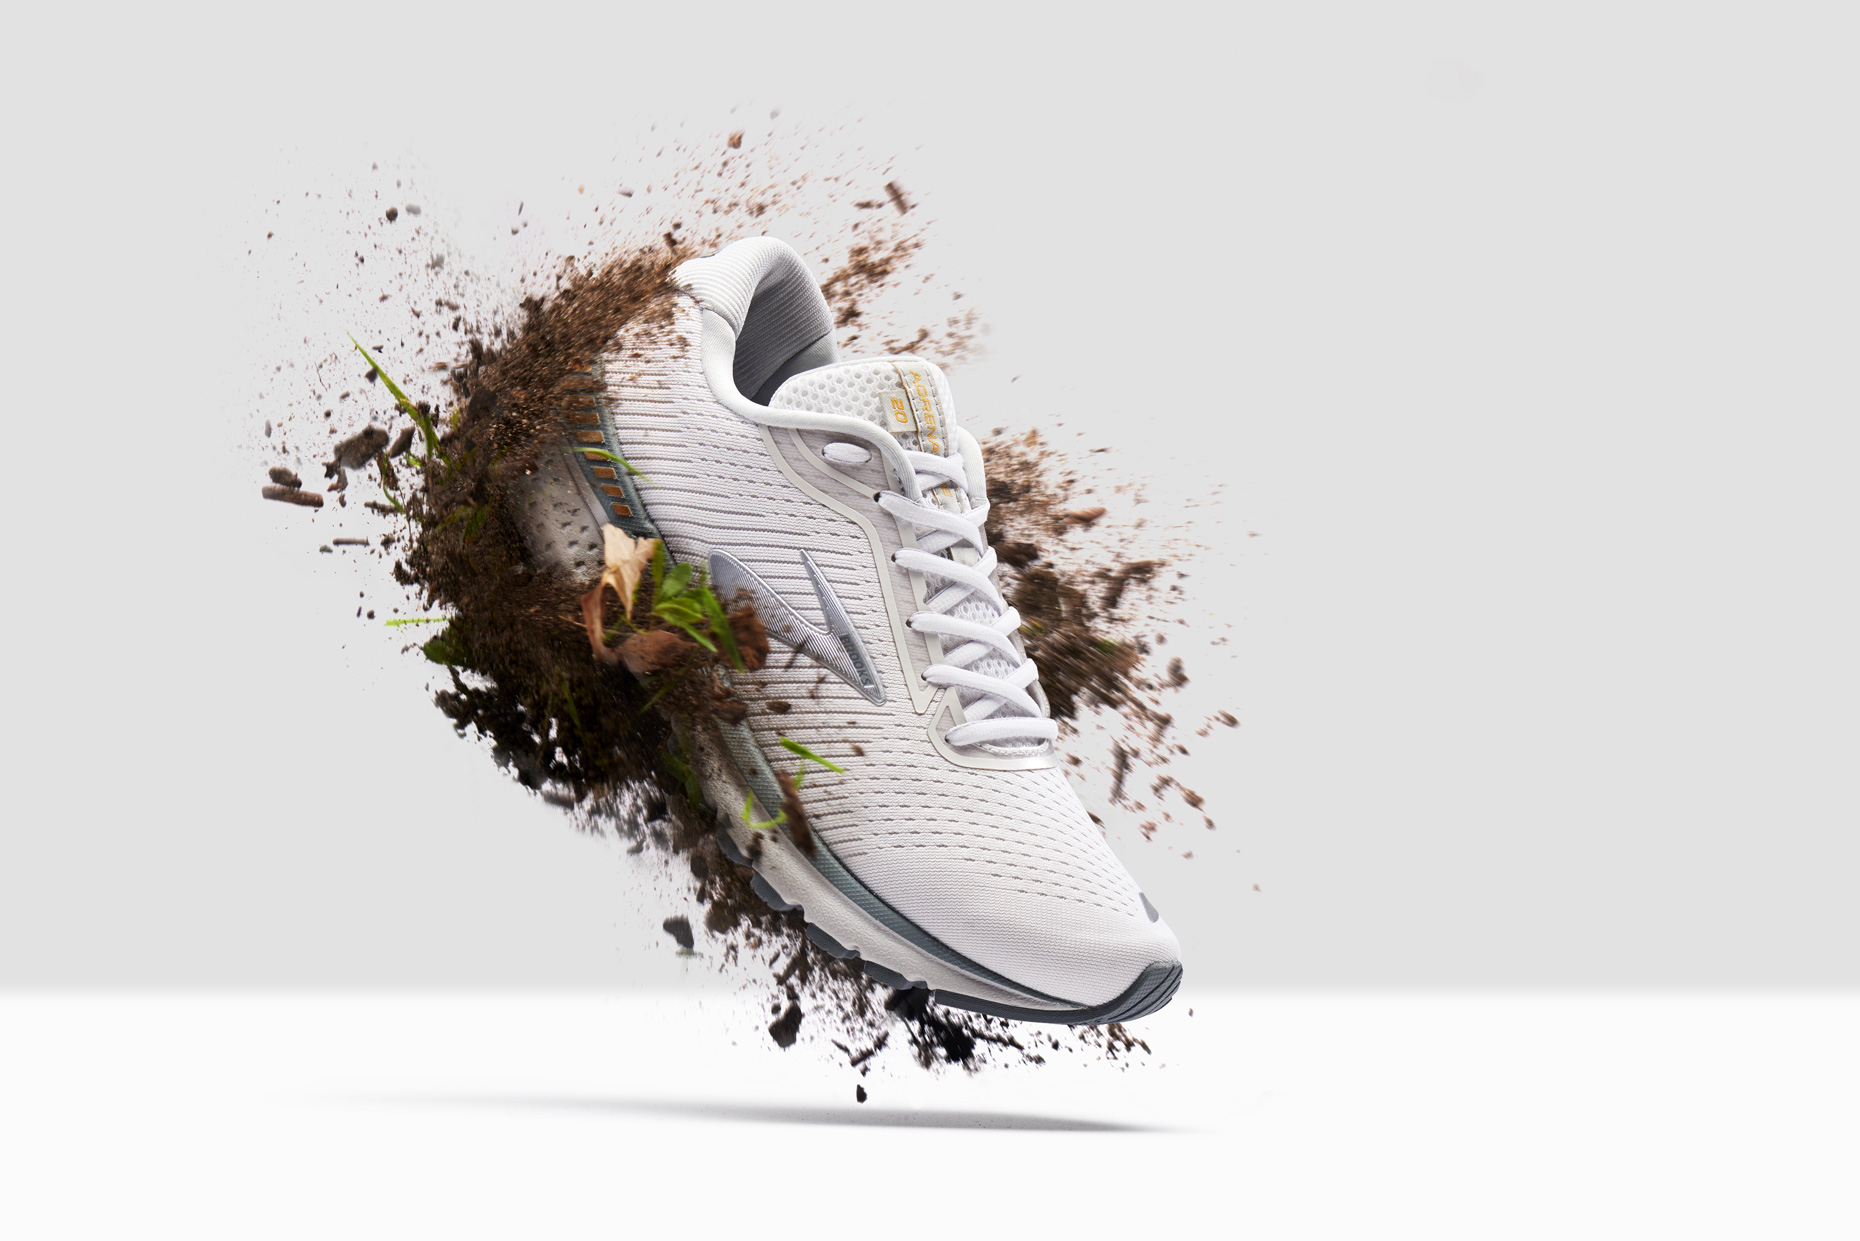 Brooks Trail Running Shoe hovering with dirt splashing, by still life photographer Adrian Mueller New York